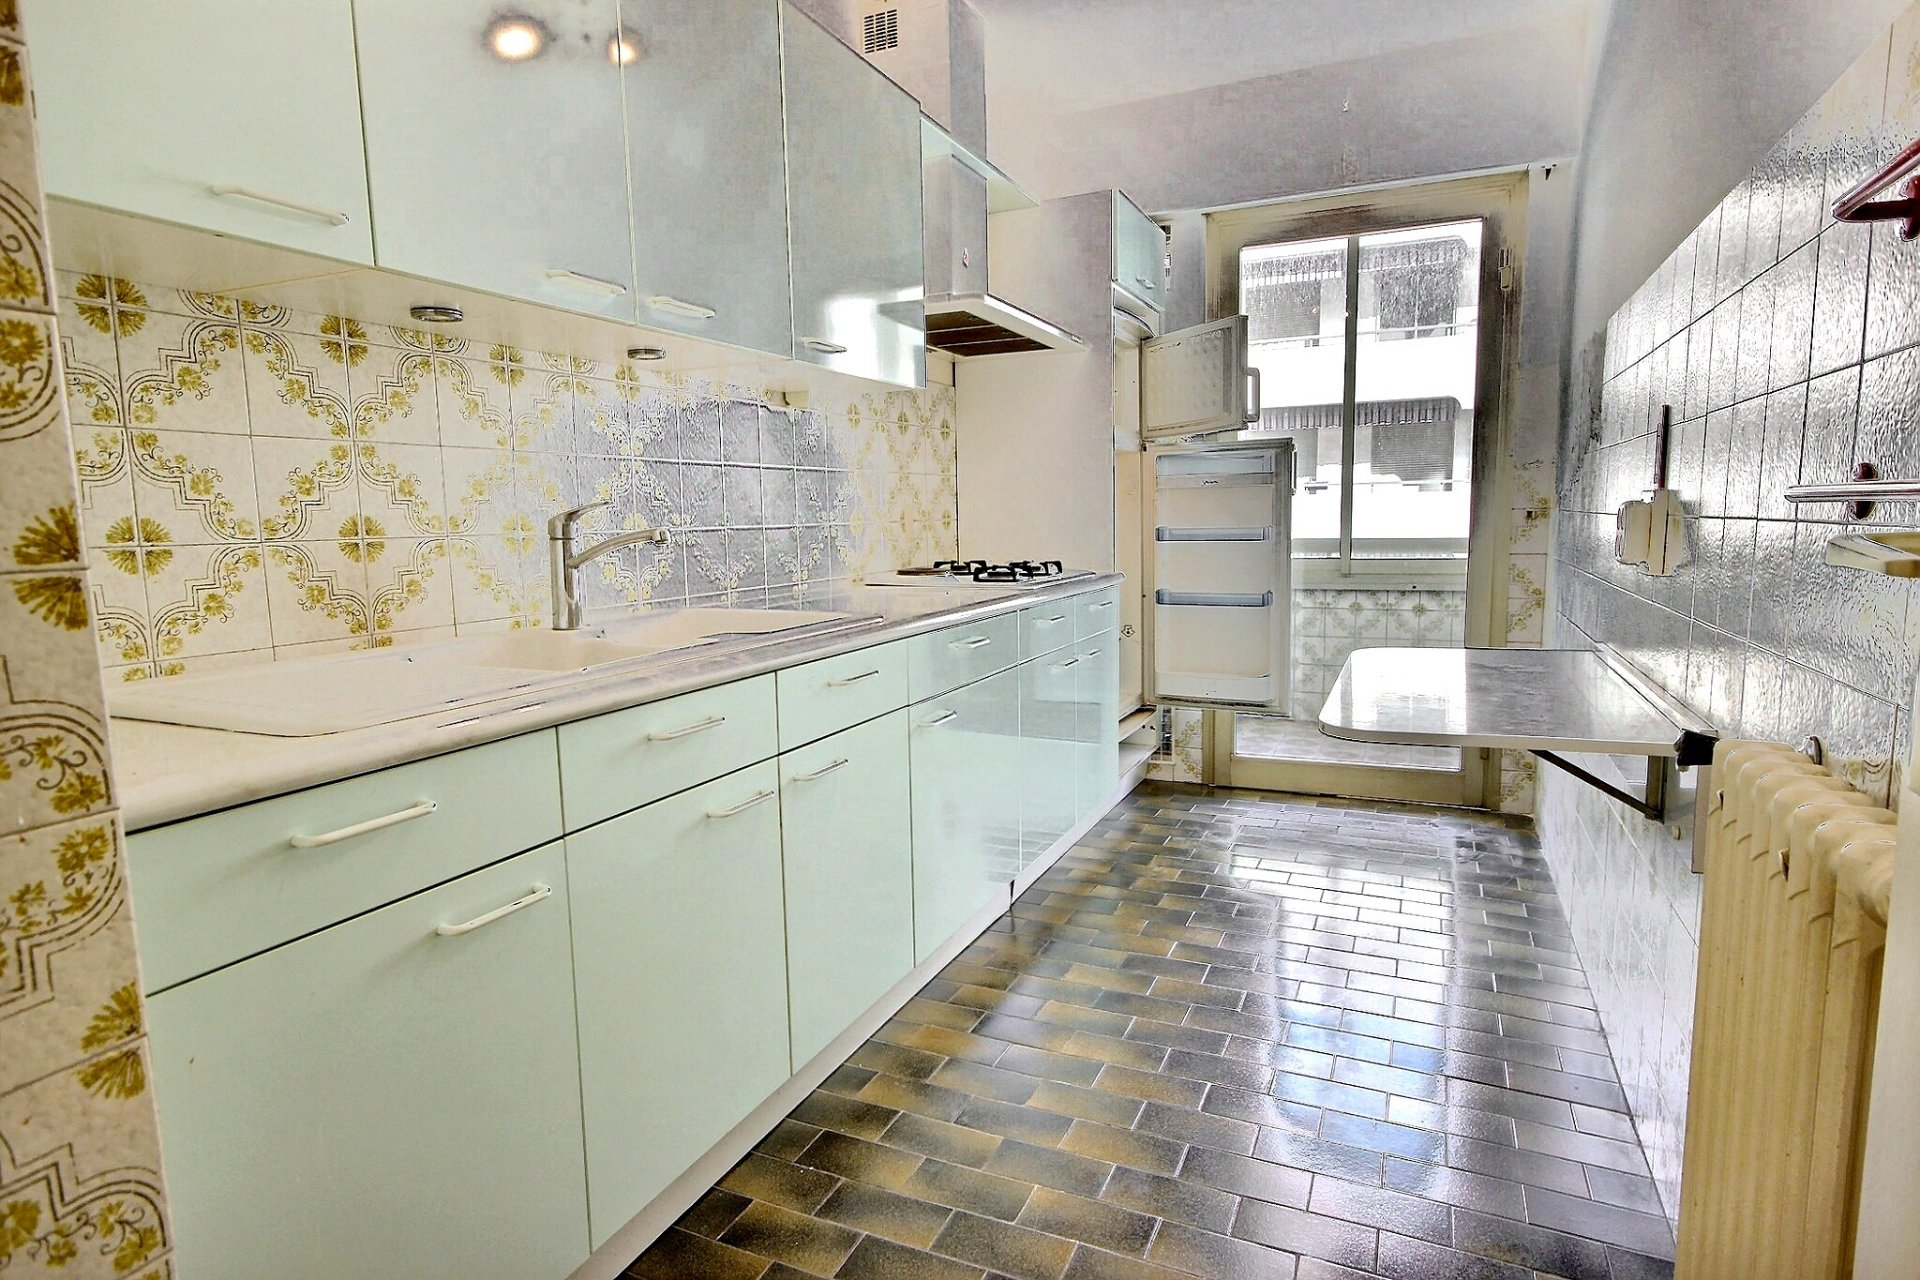 Cannes Banane property to renovate